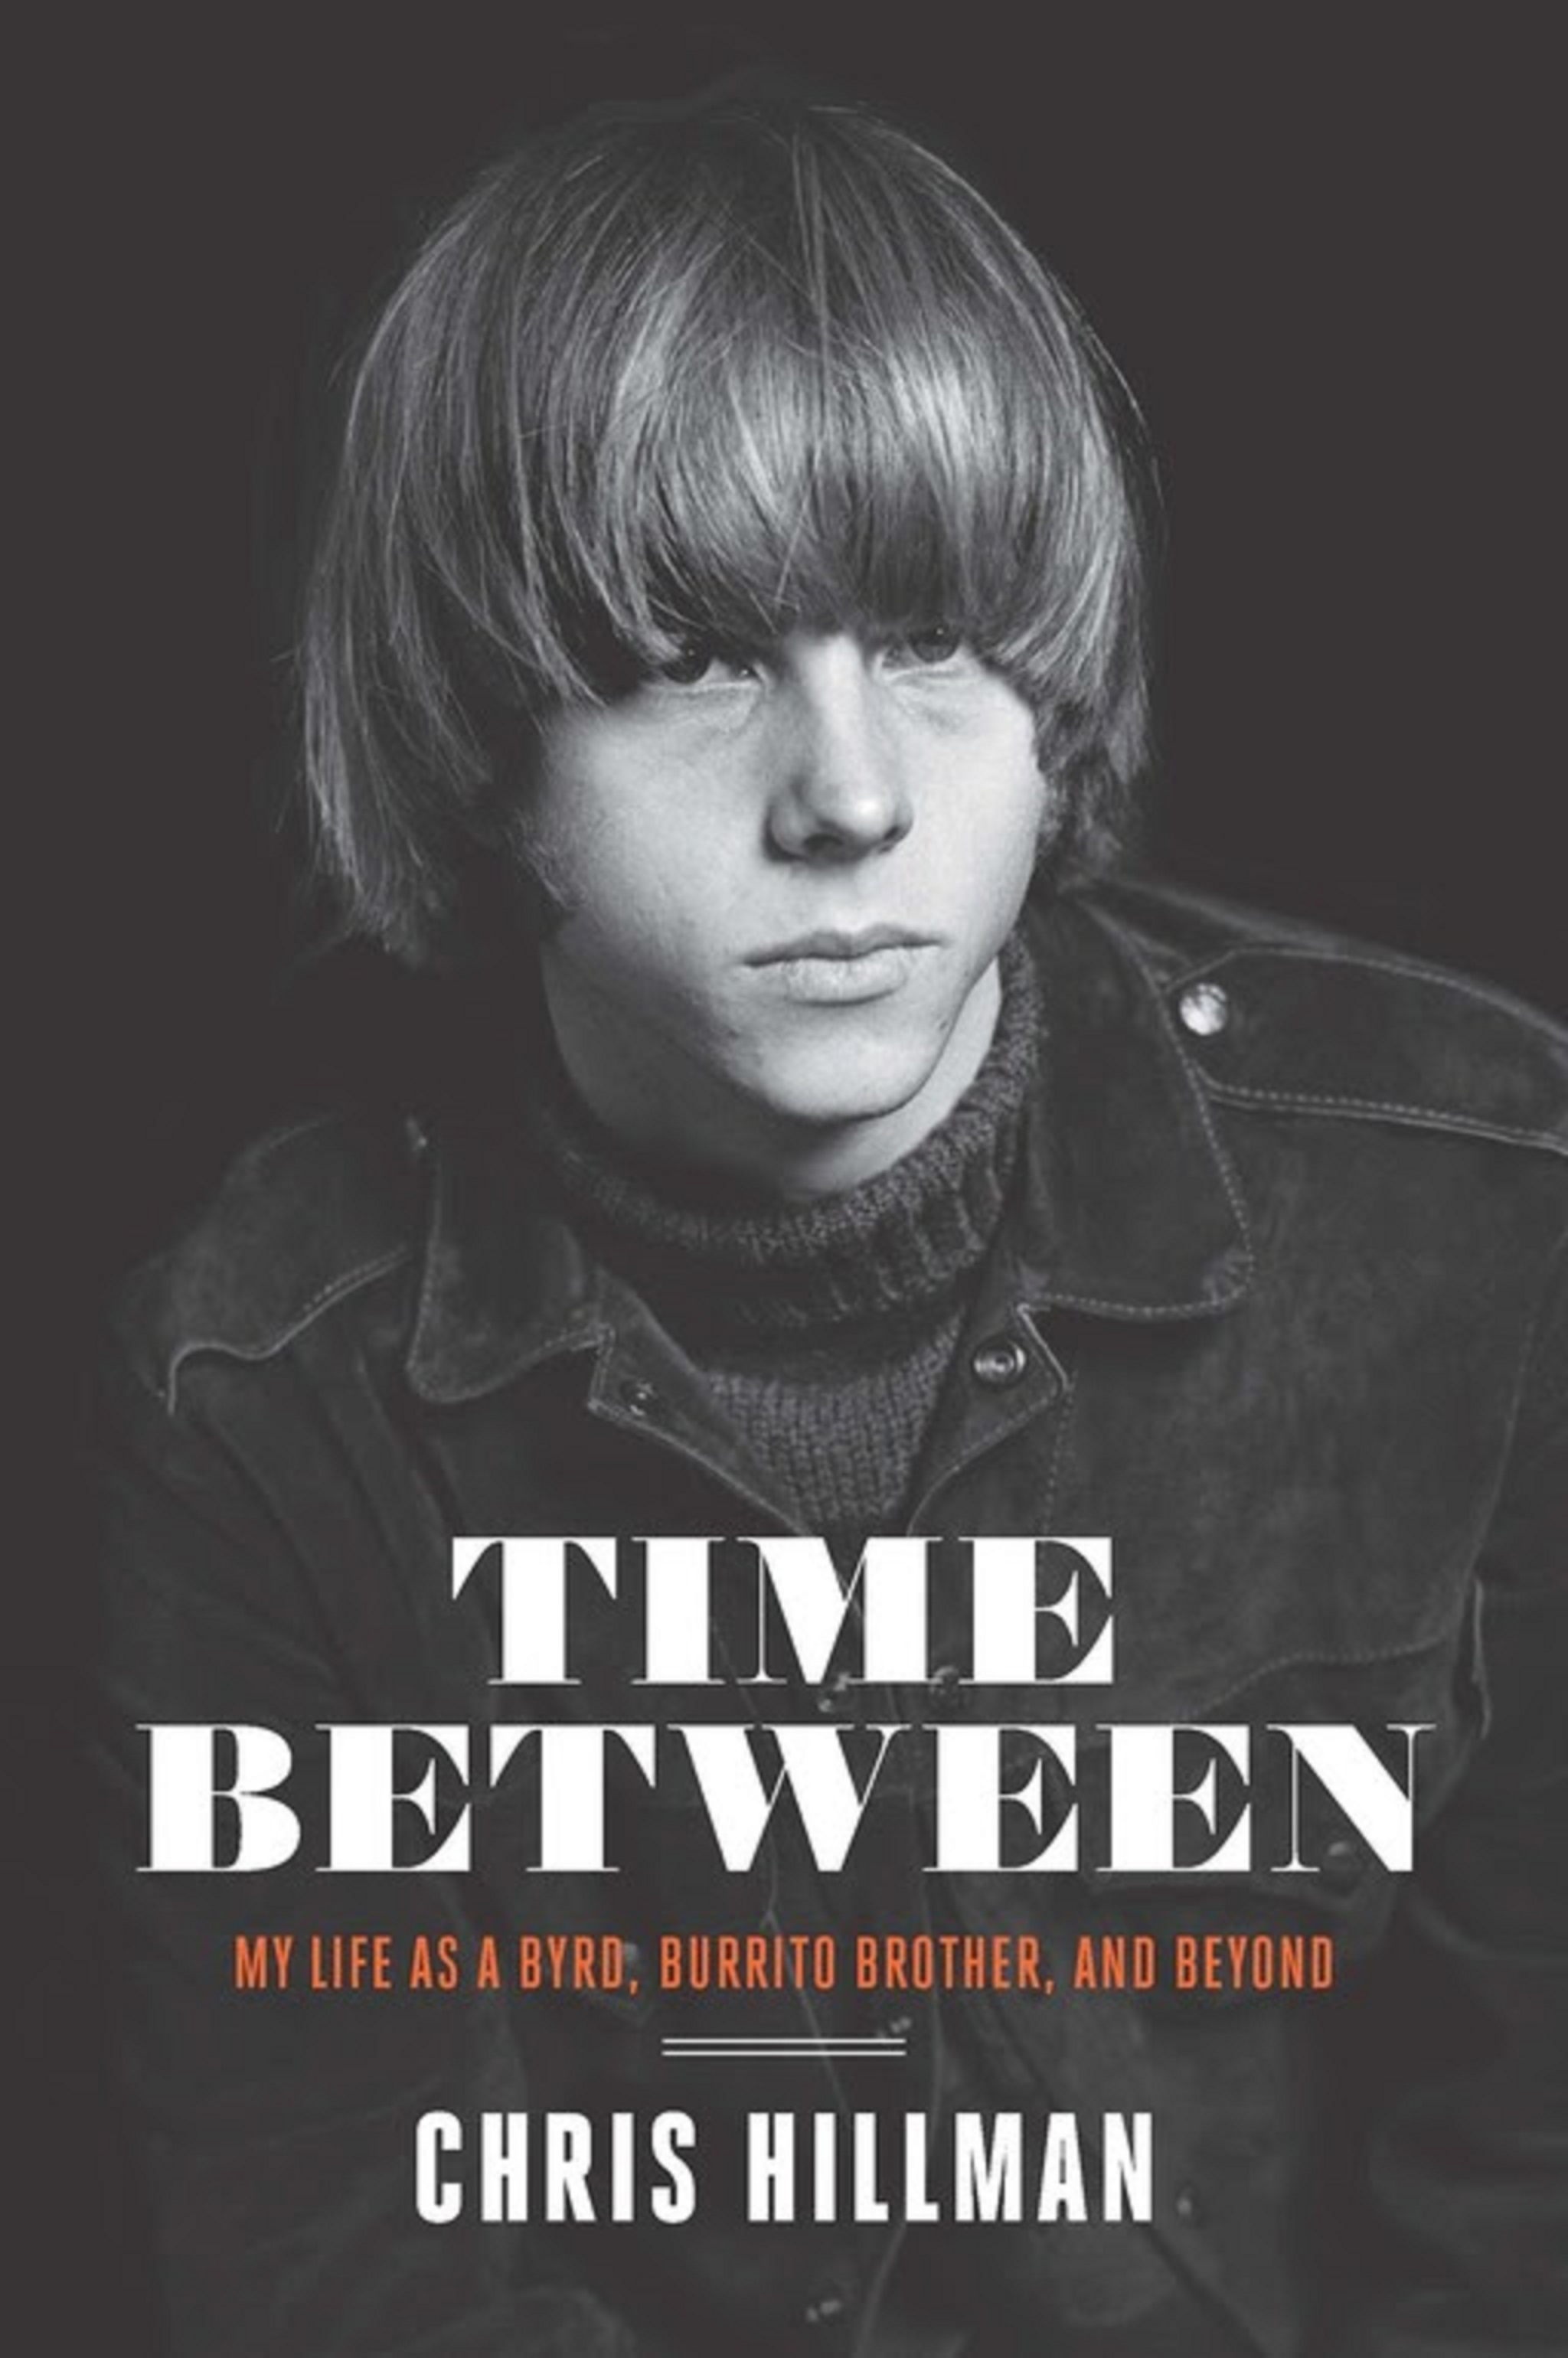 Chris Hillman's memoir 'Time Between: My Life as a Byrd, Burrito Brother and Beyond'